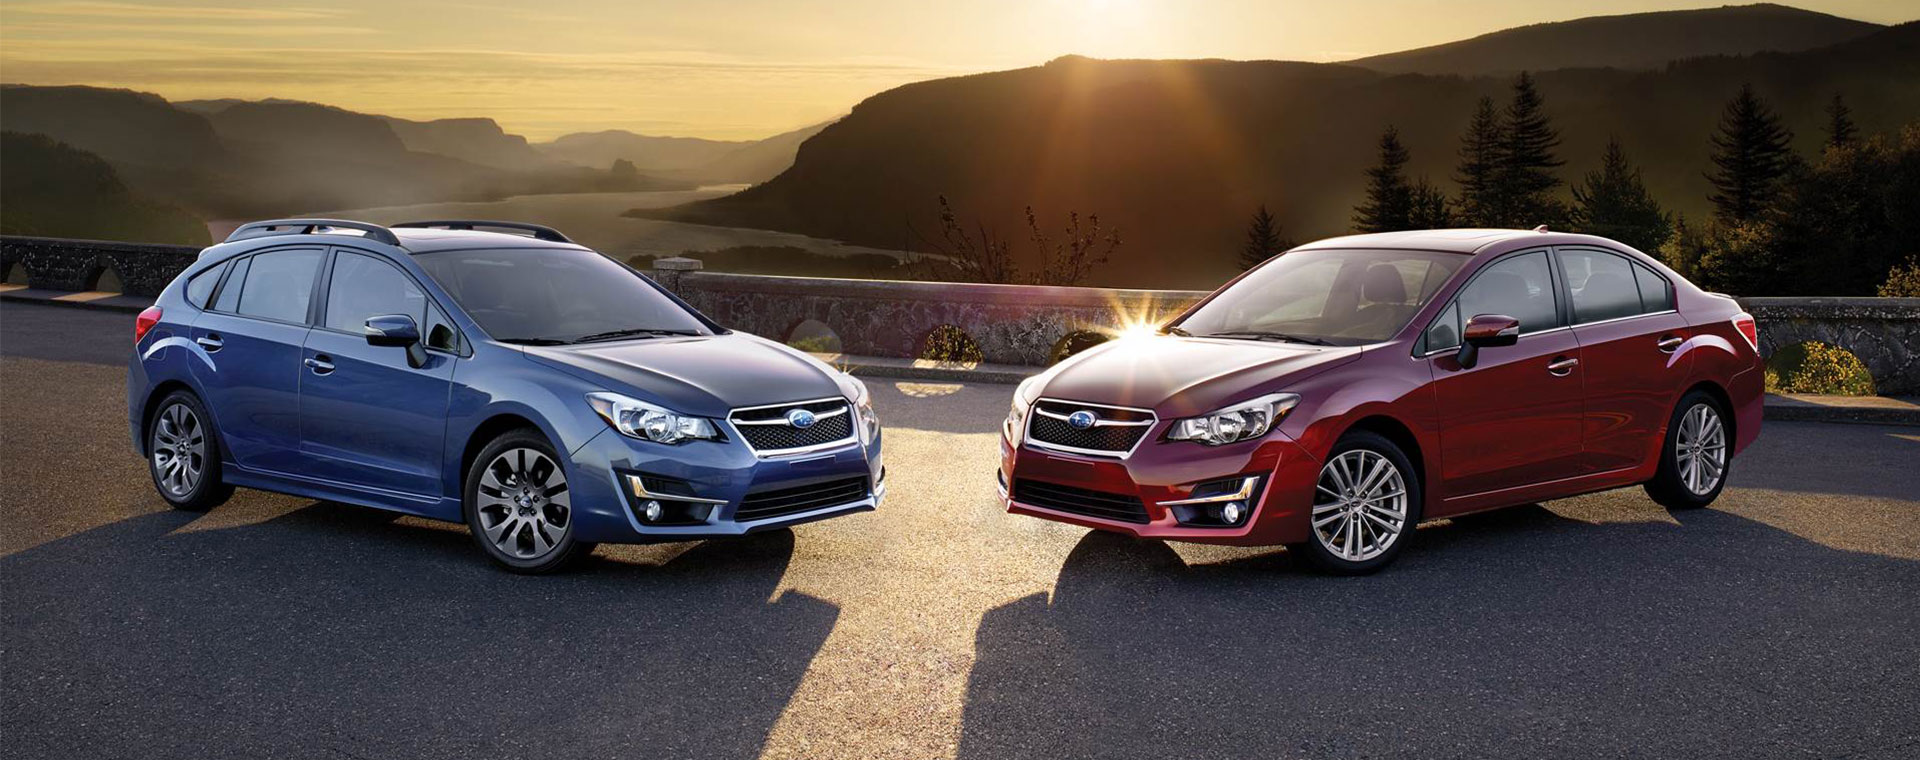 New Impreza inventory at Quirk Works Subaru